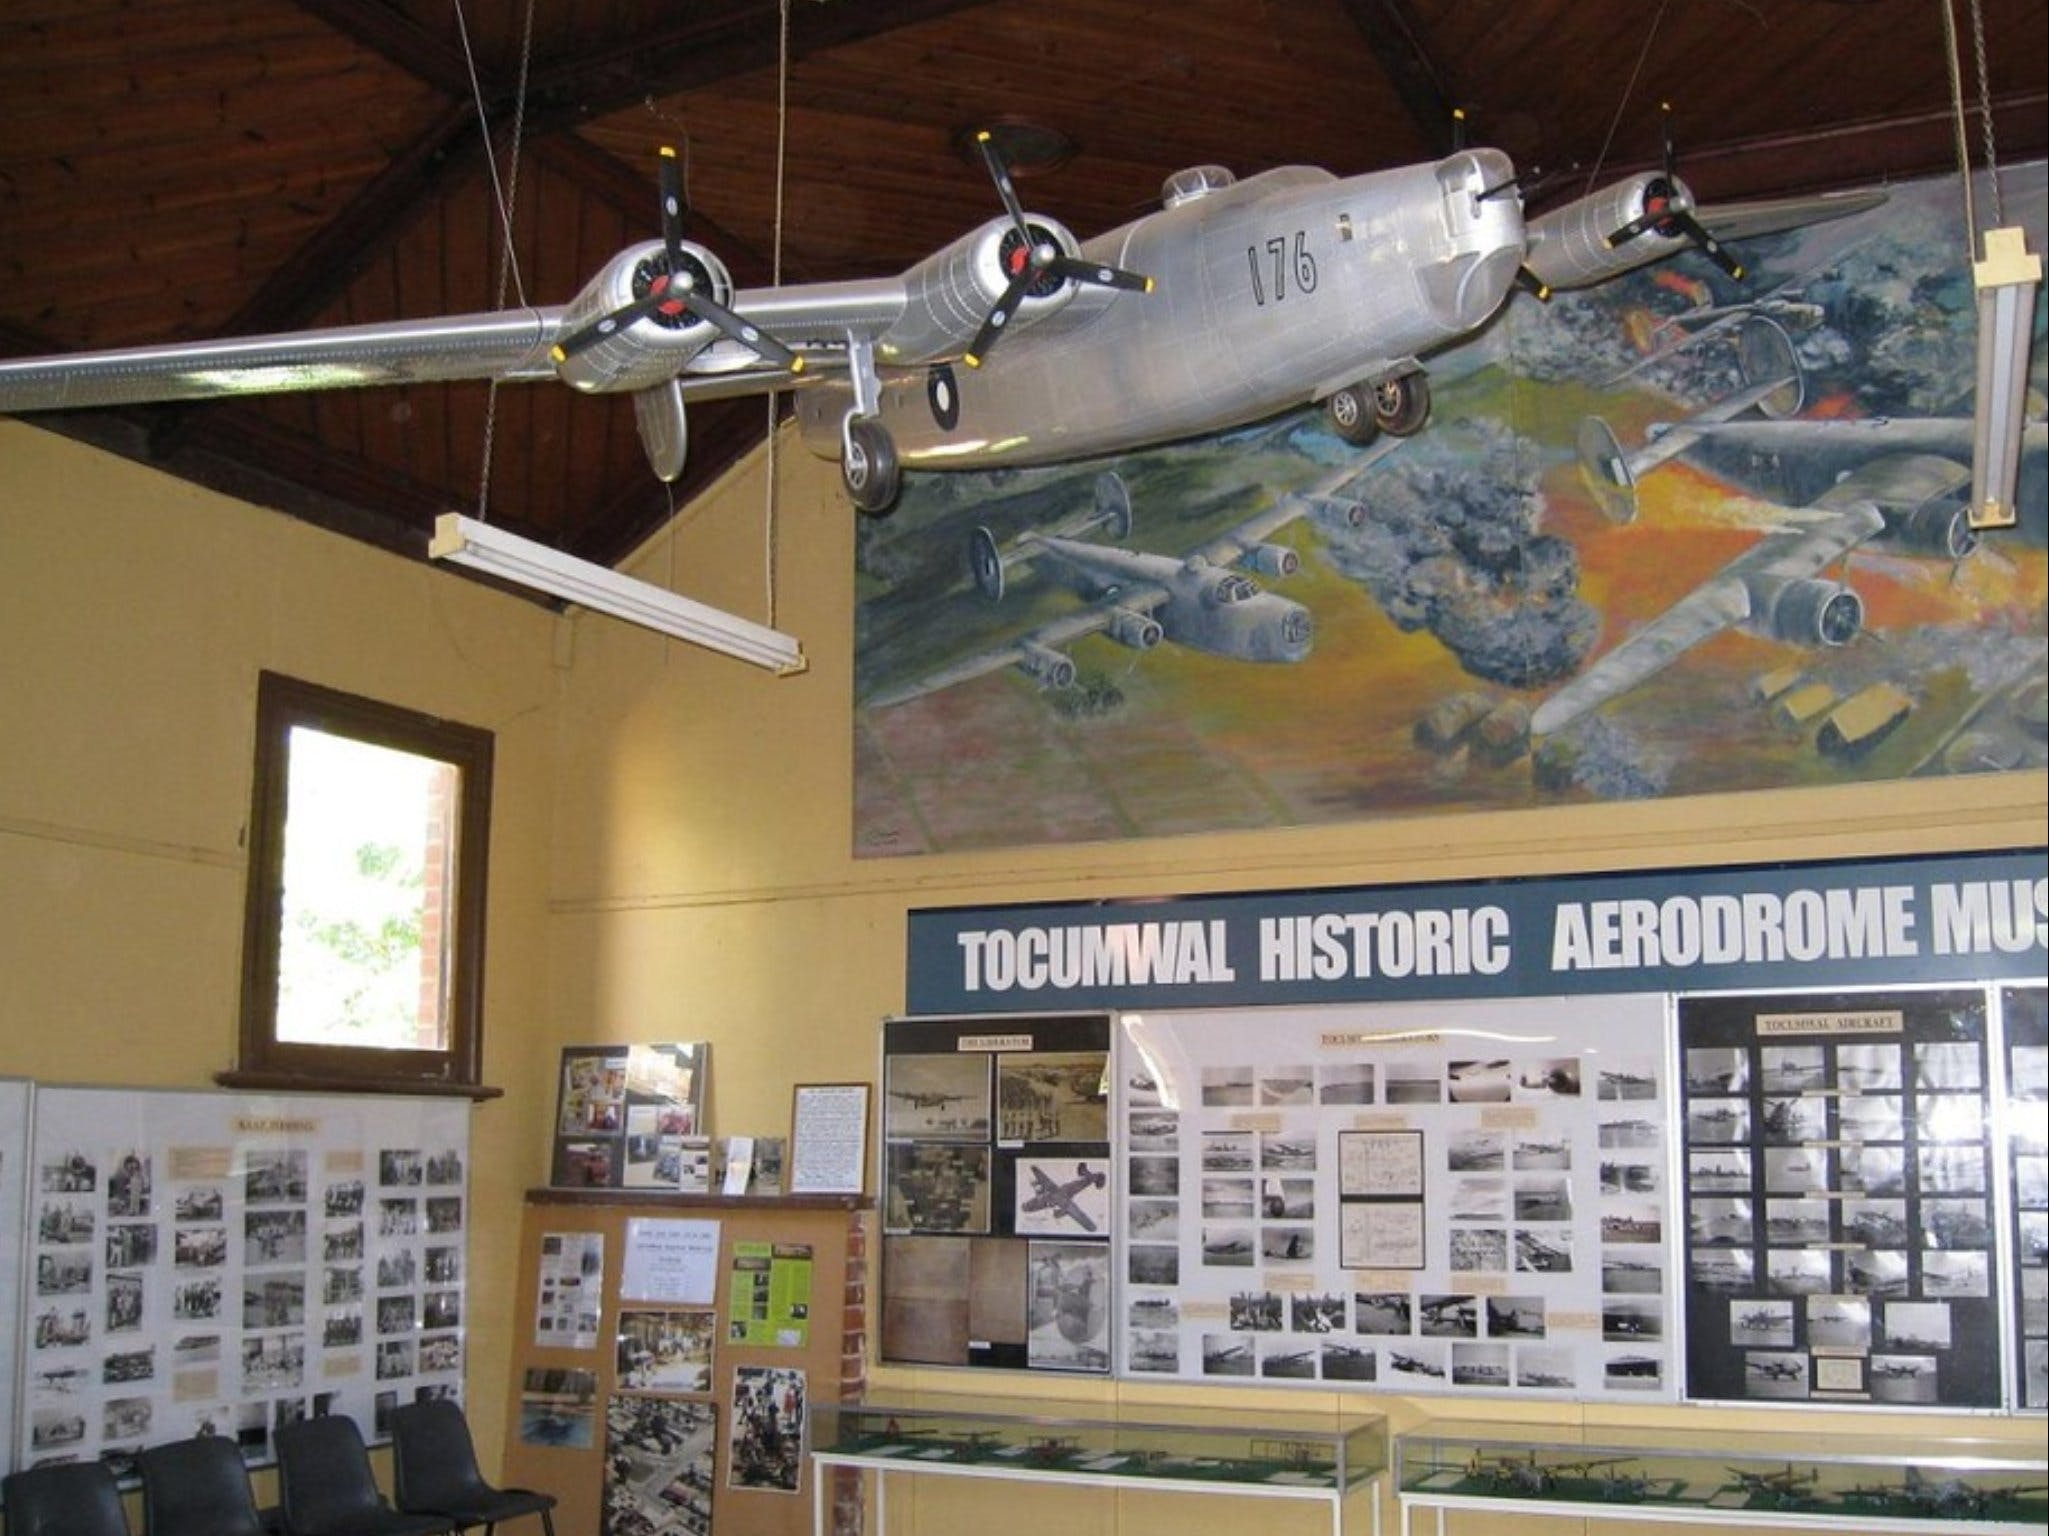 Tocumwal Historic Aerodrome Museum - eAccommodation